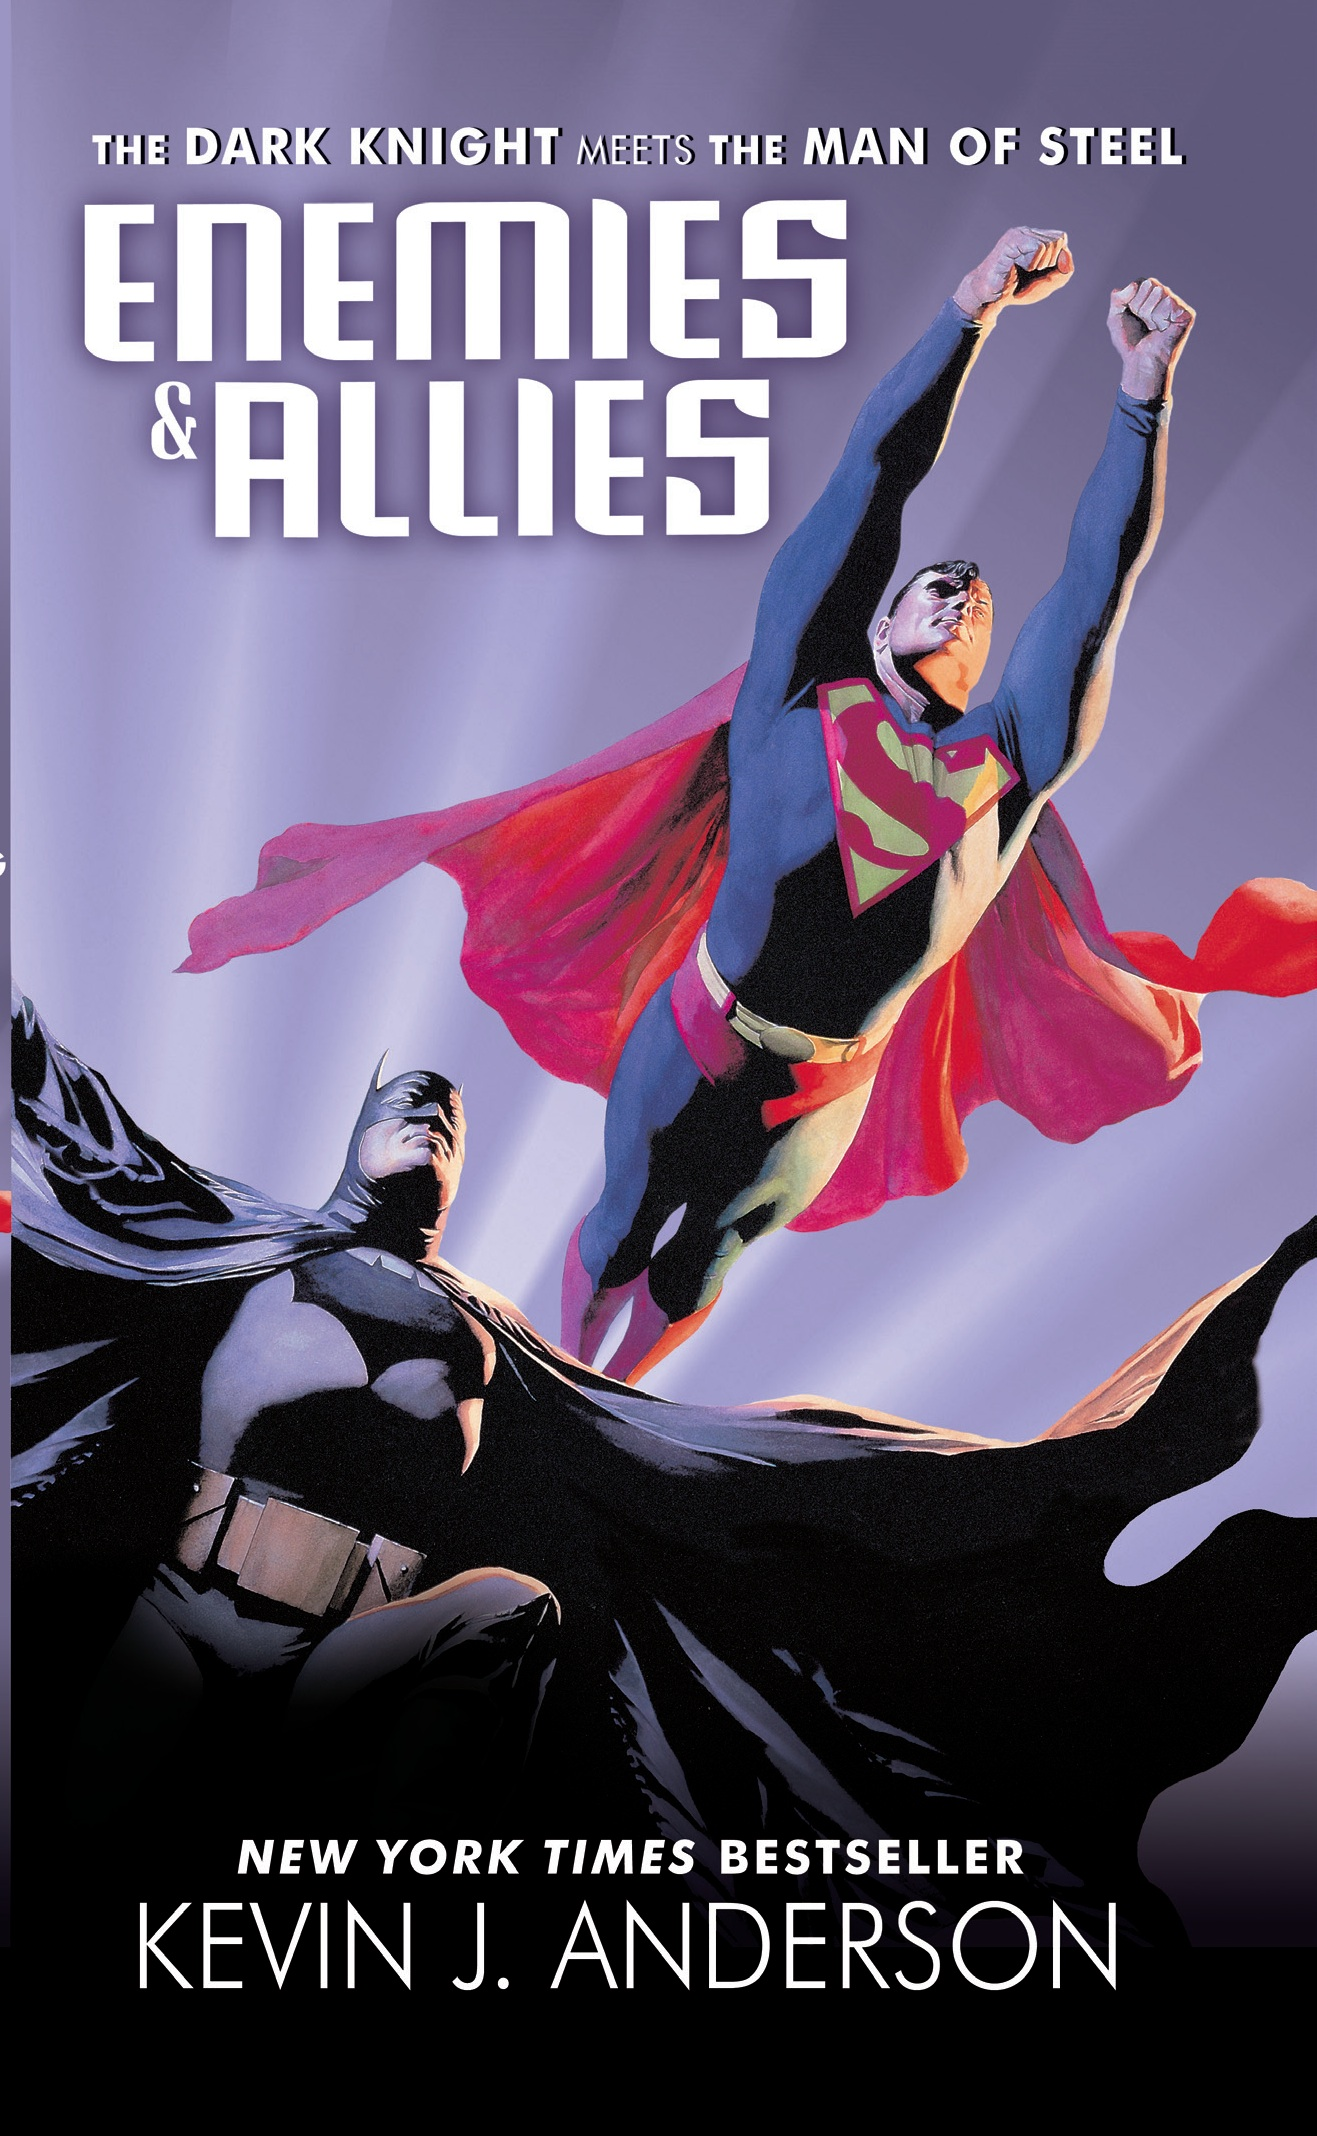 Title: Enemies & Allies Writer: Kevin J. Anderson Cover Artist: Alex Ross Publisher: It Books, imprint of Harper Collins With...